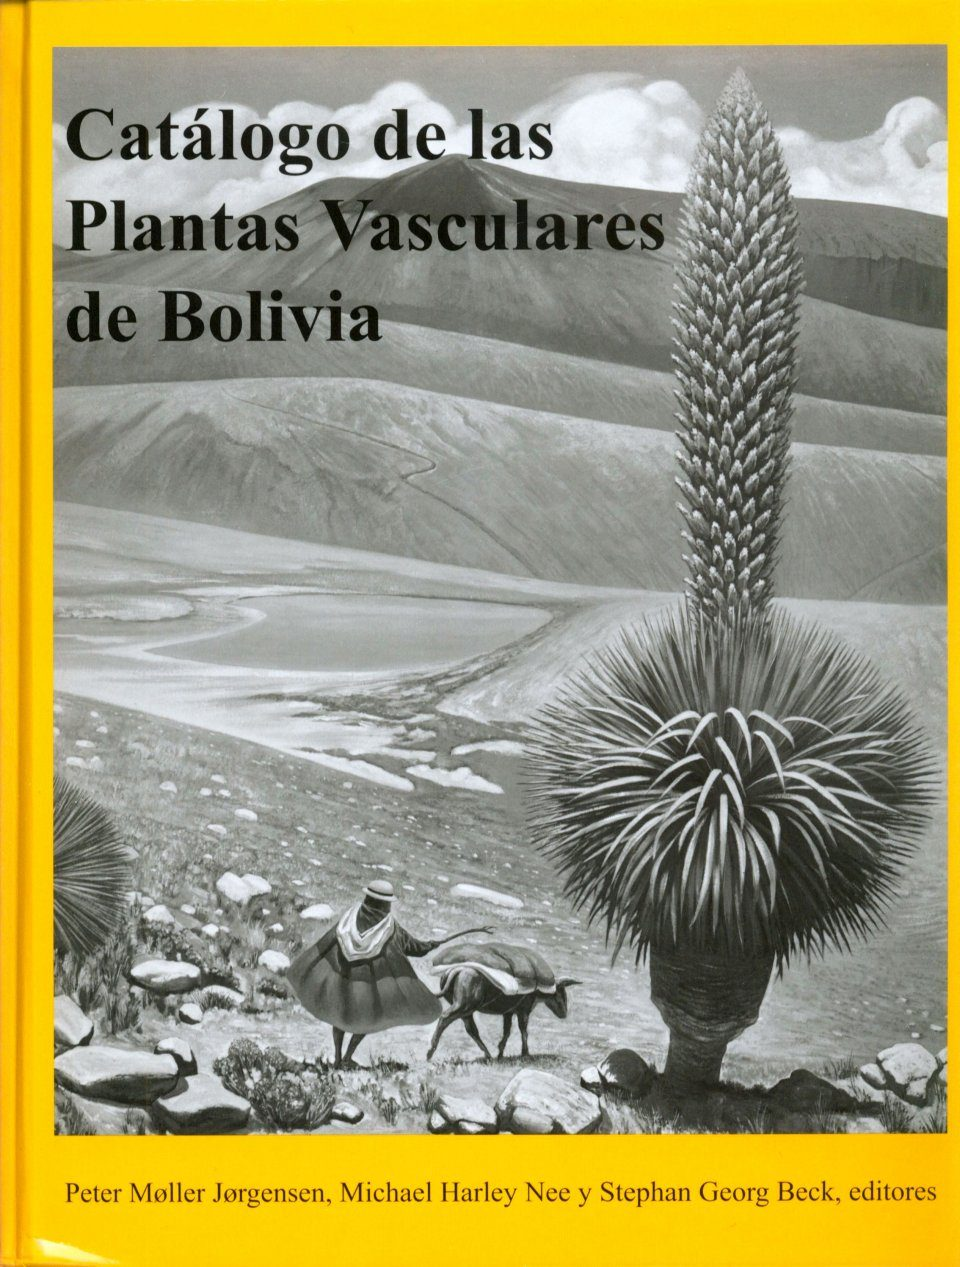 Catálogo de las Plantas Vasculares de Bolivia [Catalogue of the Vascular Plants of Bolivia] (2-Volume Set)